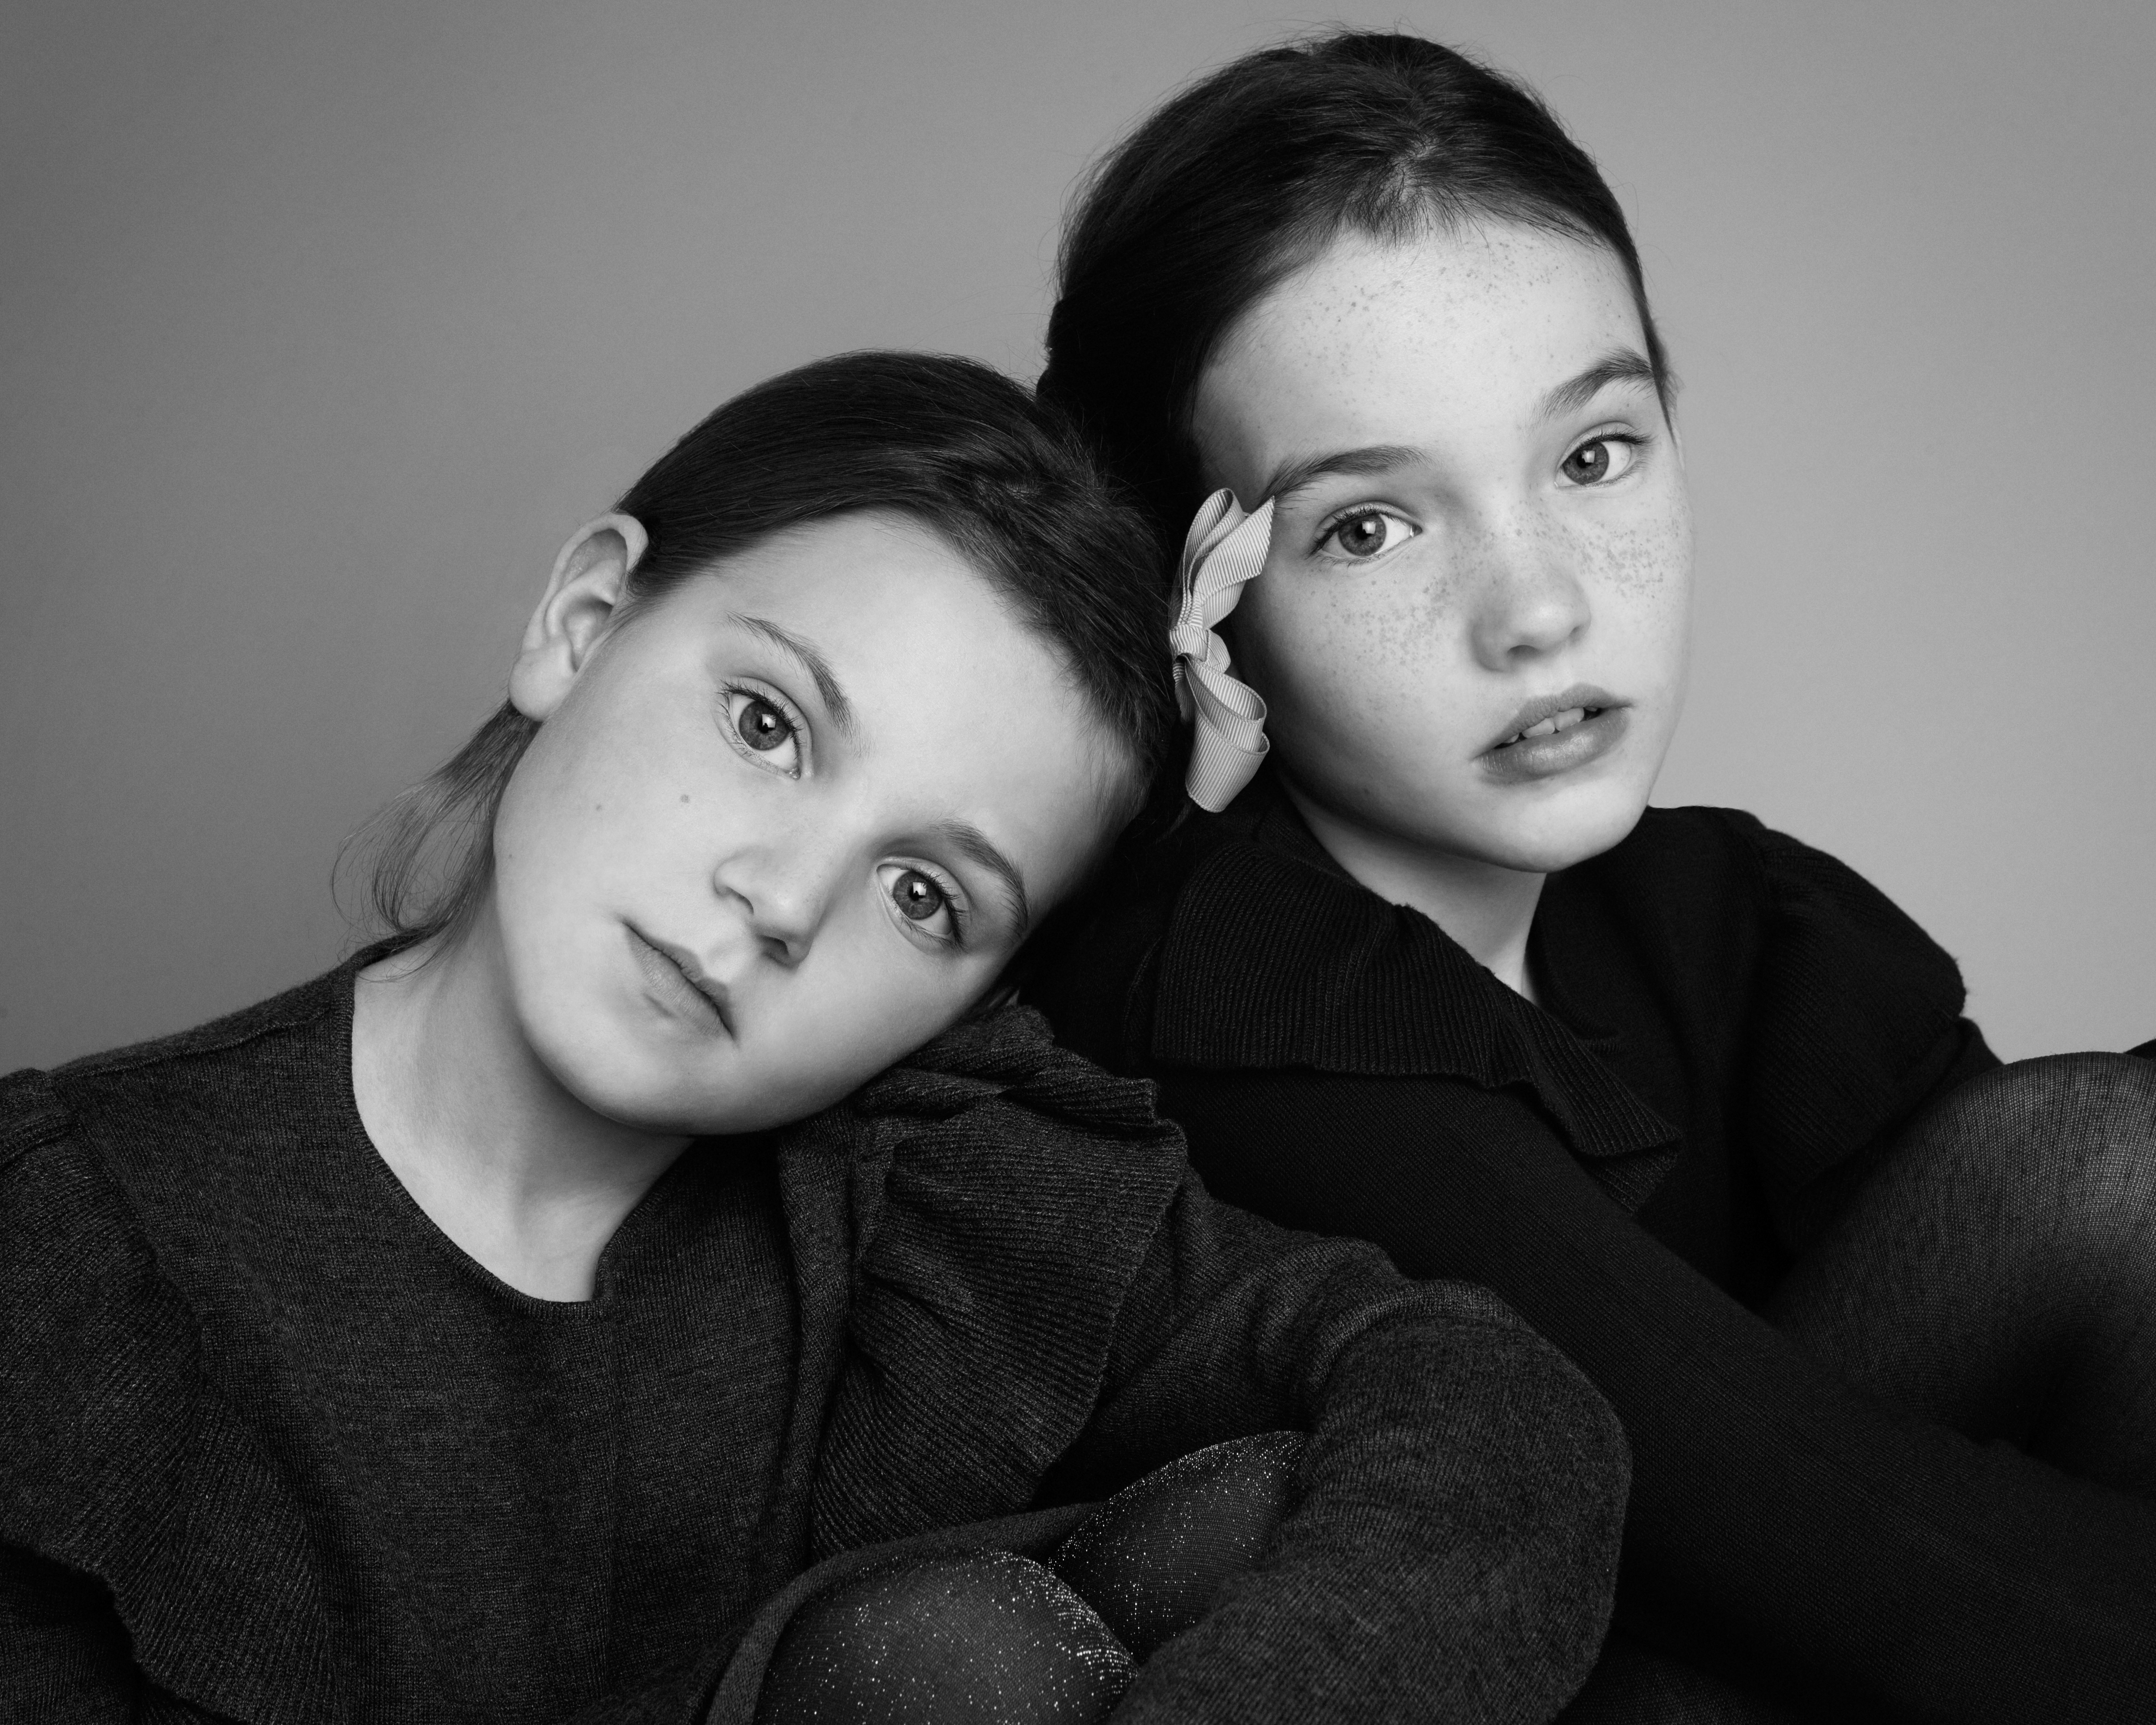 Black and white photography by Veruschka Baudo